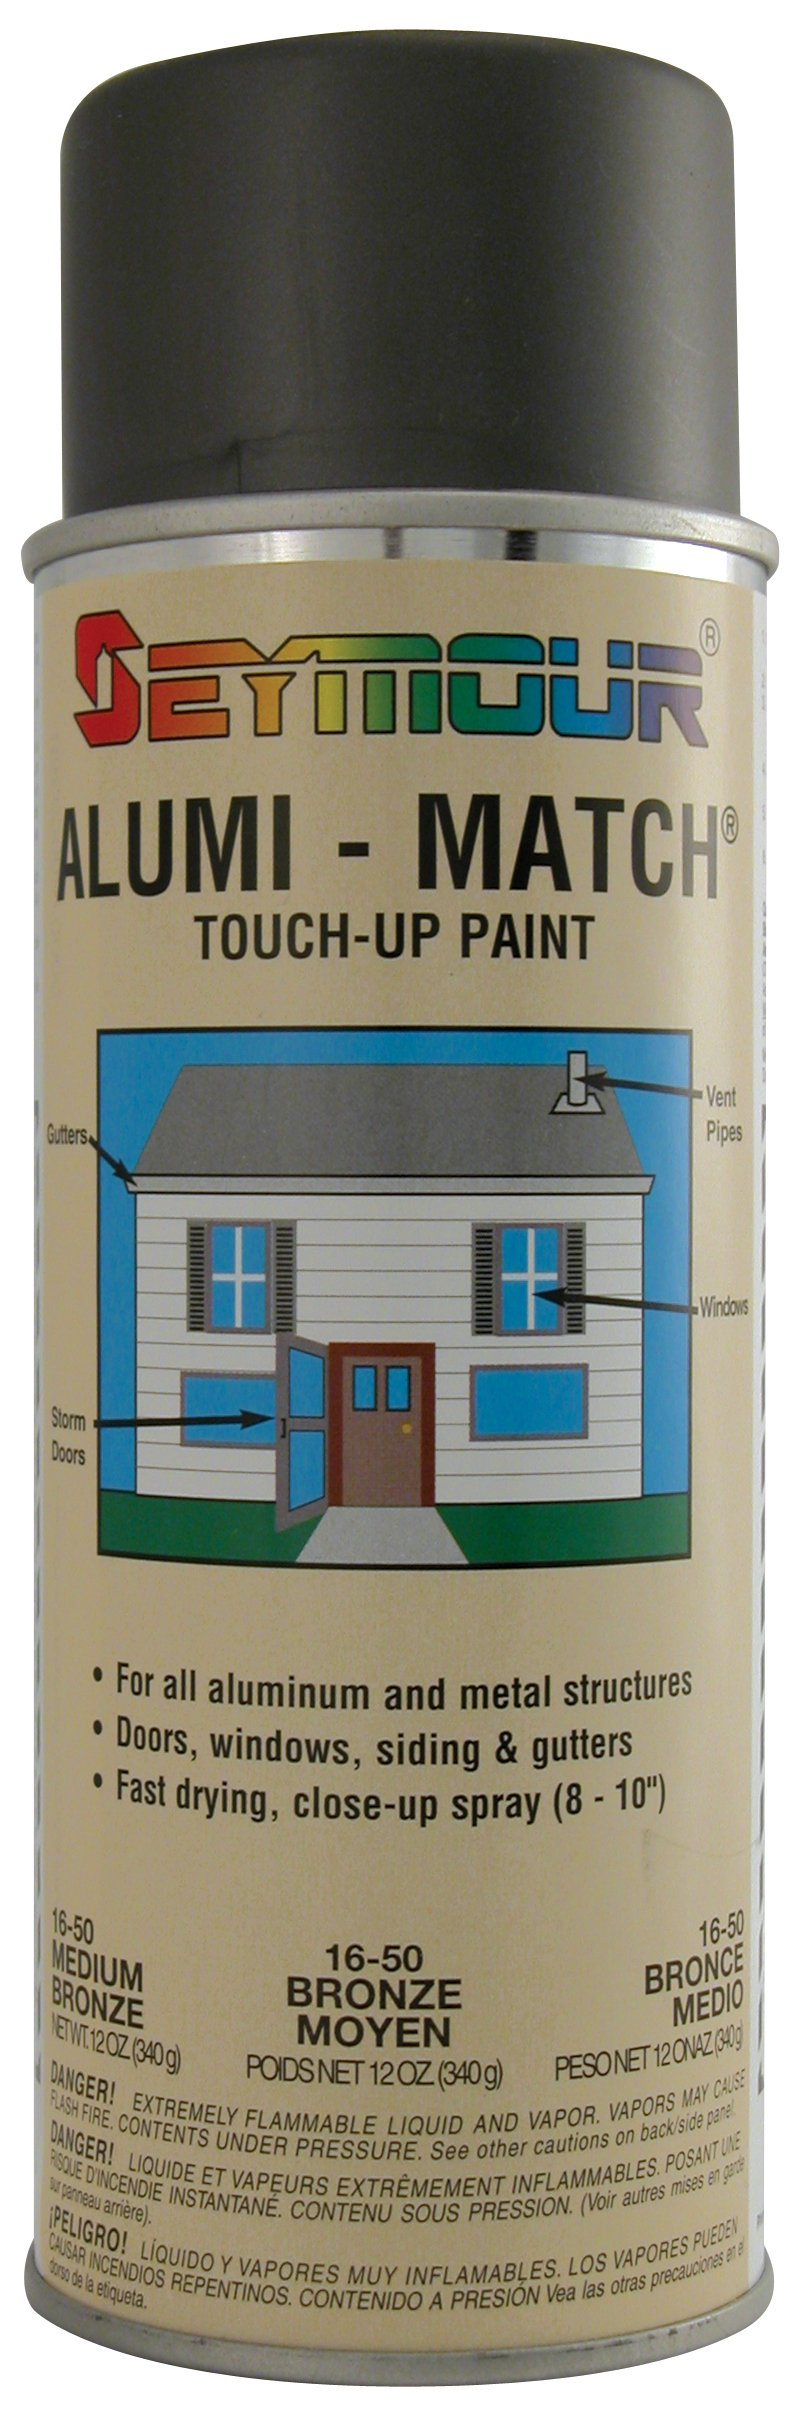 Seymour 16-050 Touch-up paint Spray Paint, Bronze